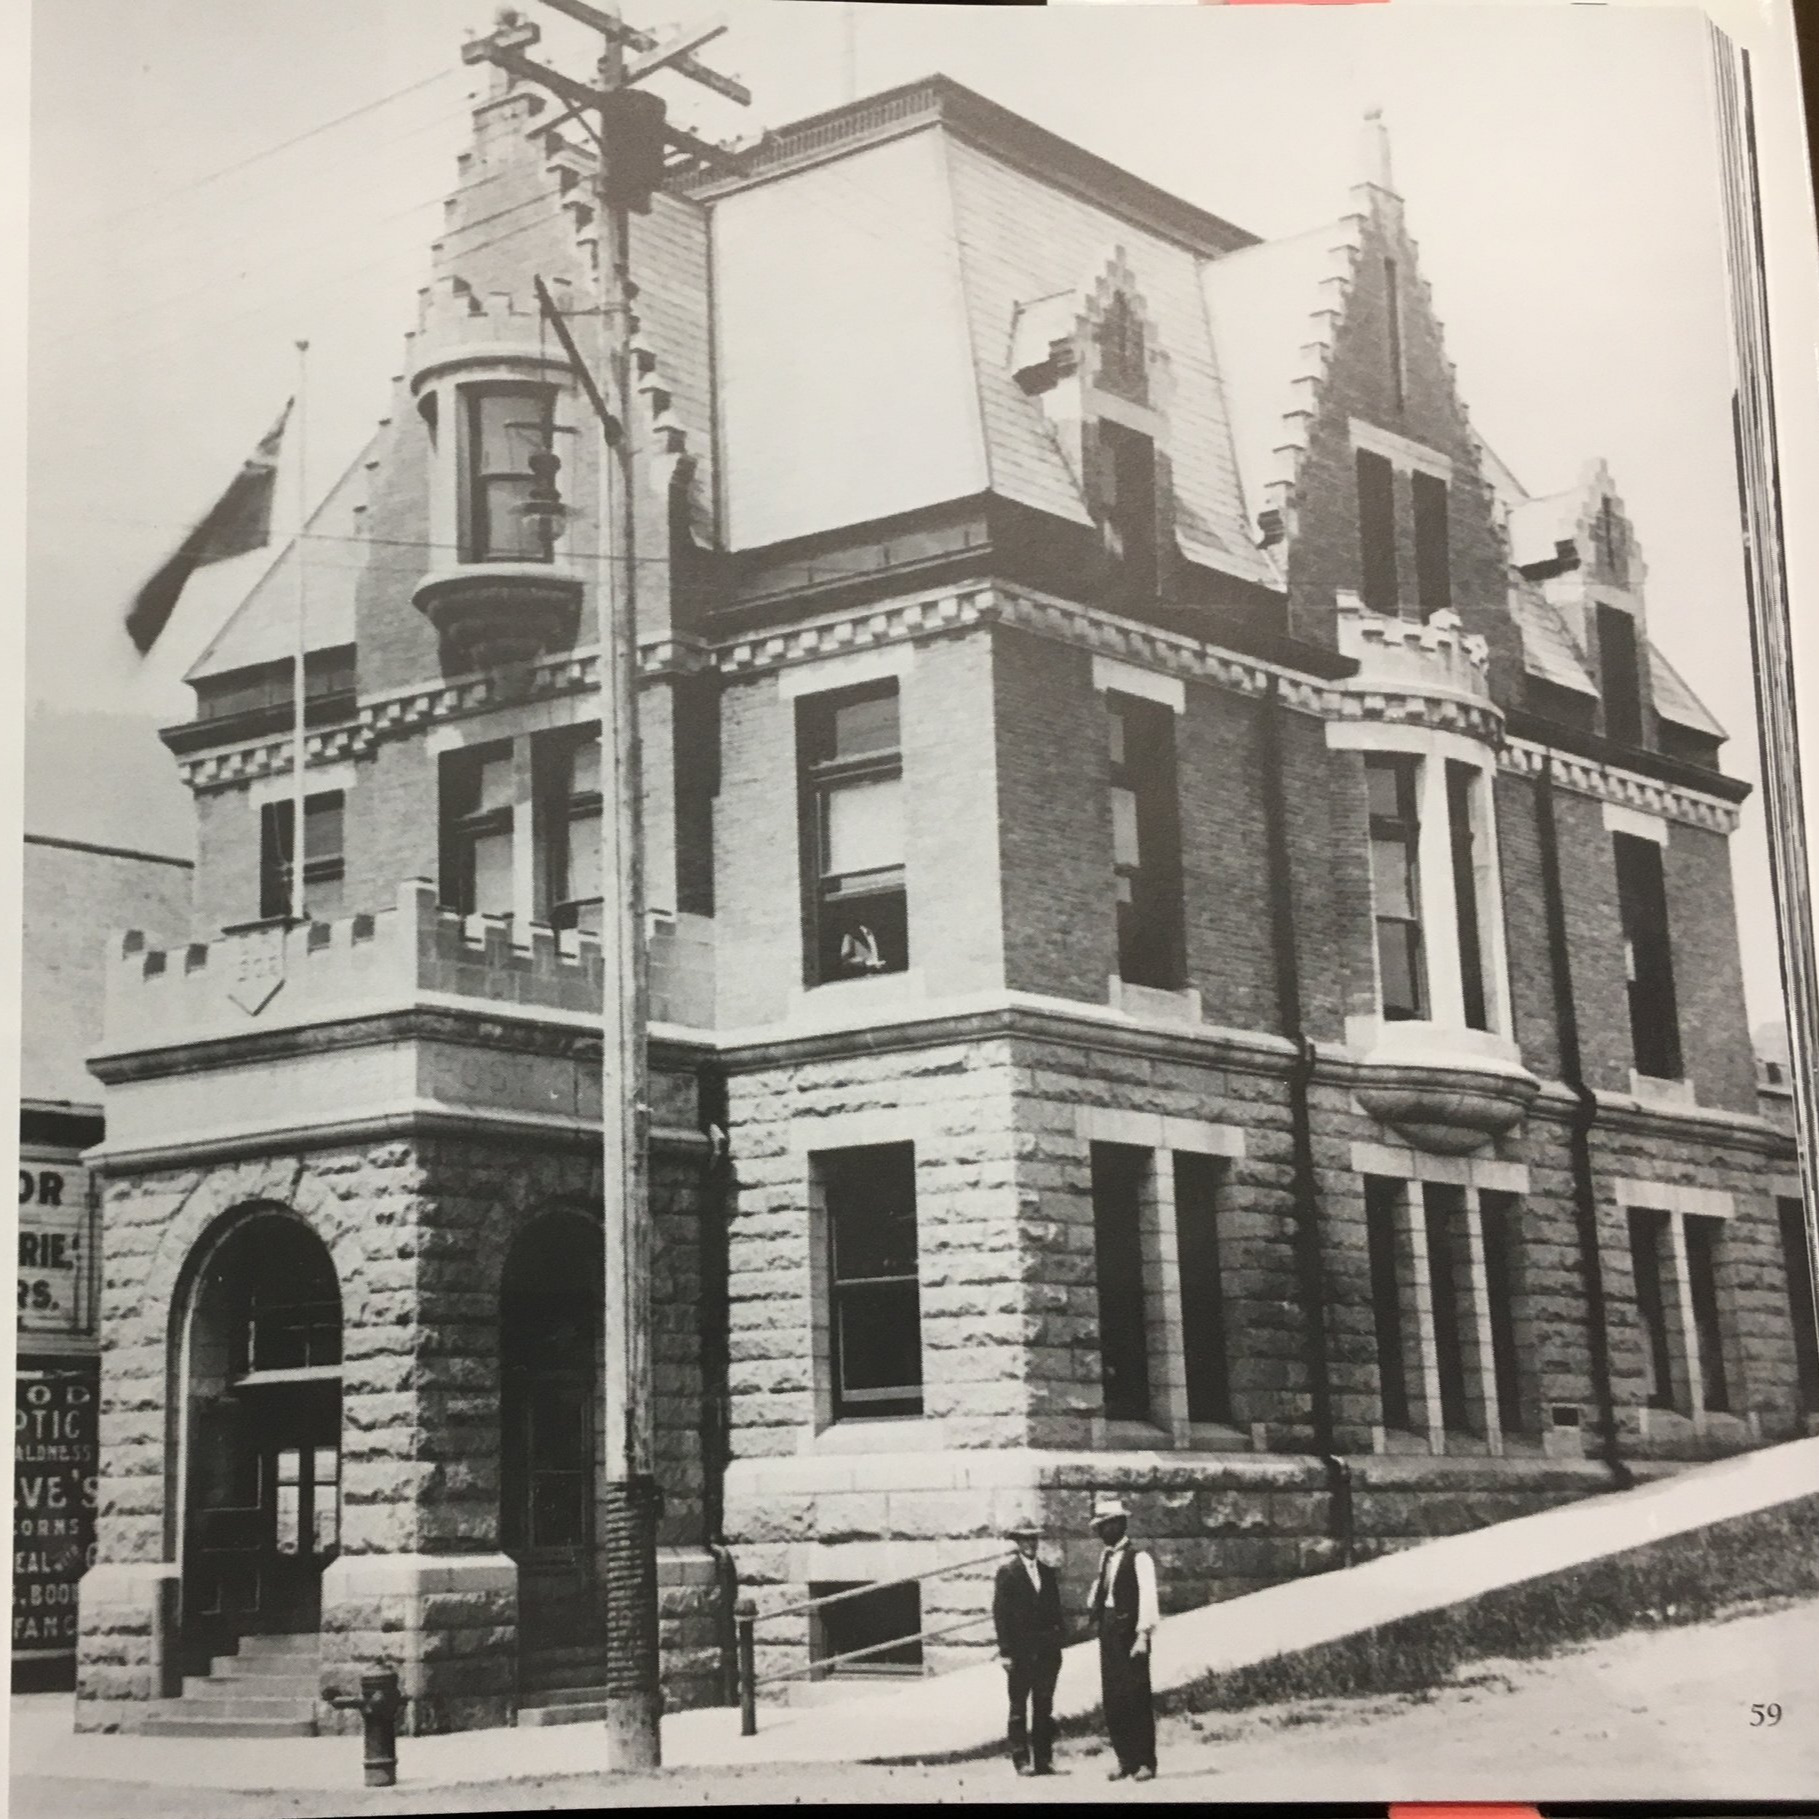 Rossland Post Office circa 1910 included the Customs Office.